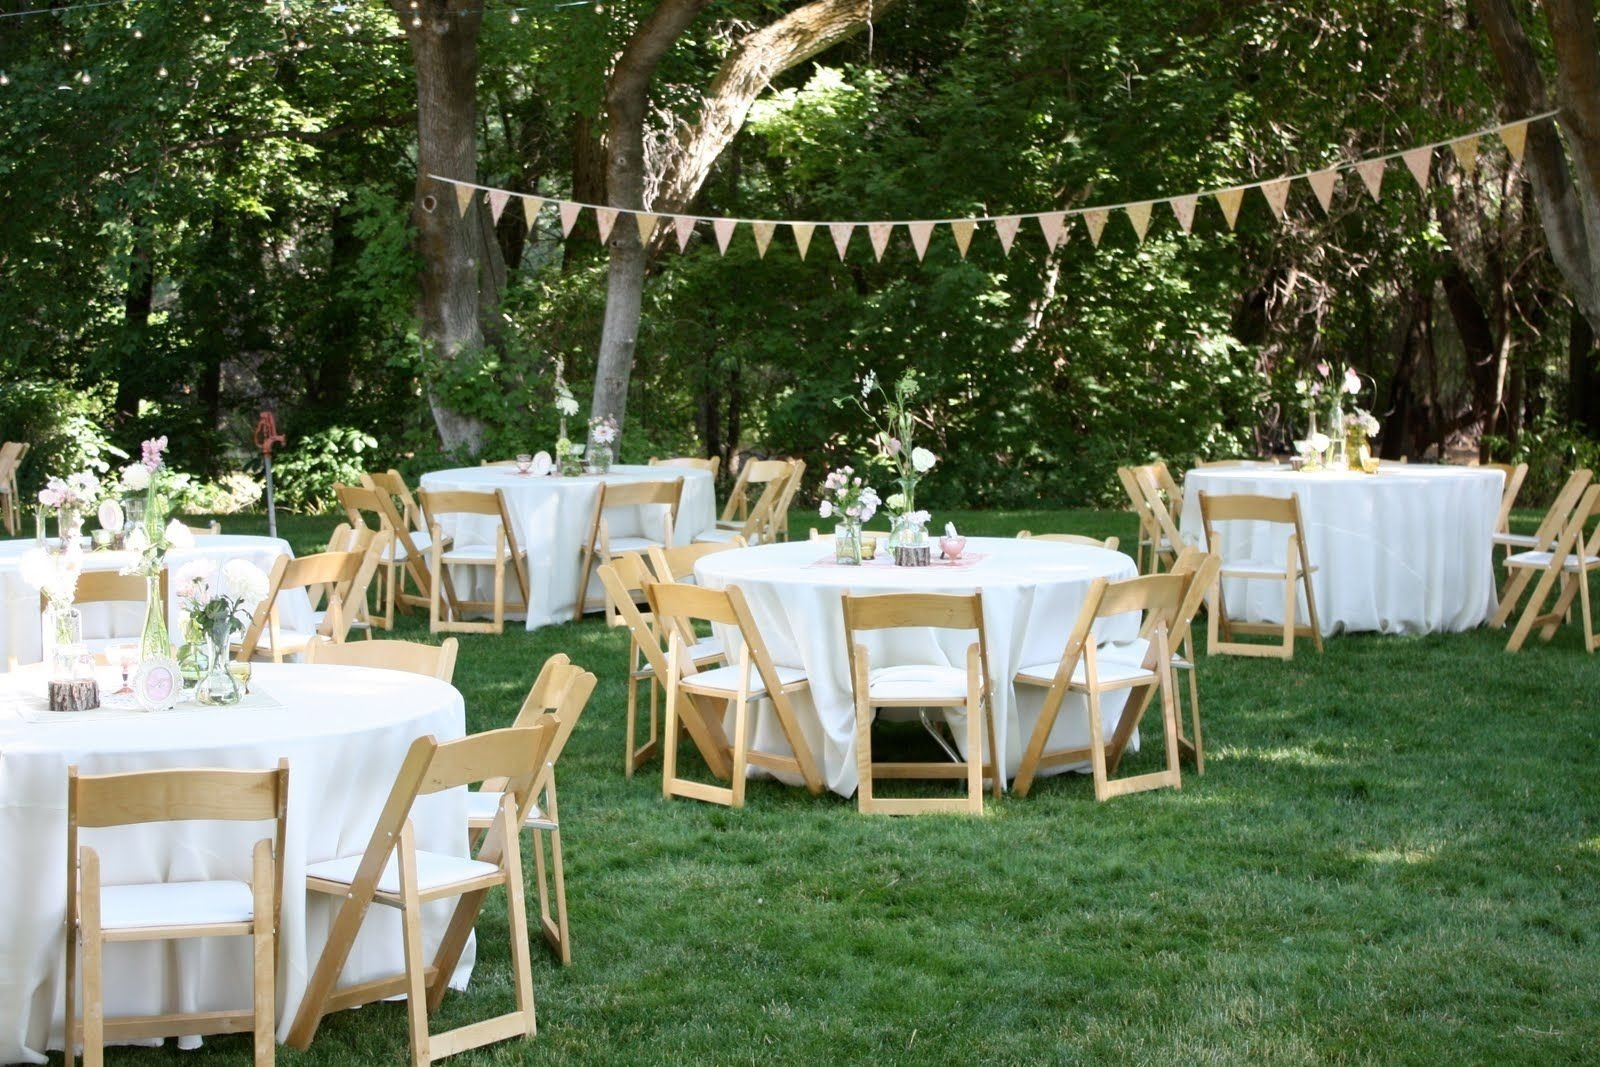 10 Lovely Reception Ideas For Small Weddings backyard wedding reception decoration ideas wedding event 1 2021